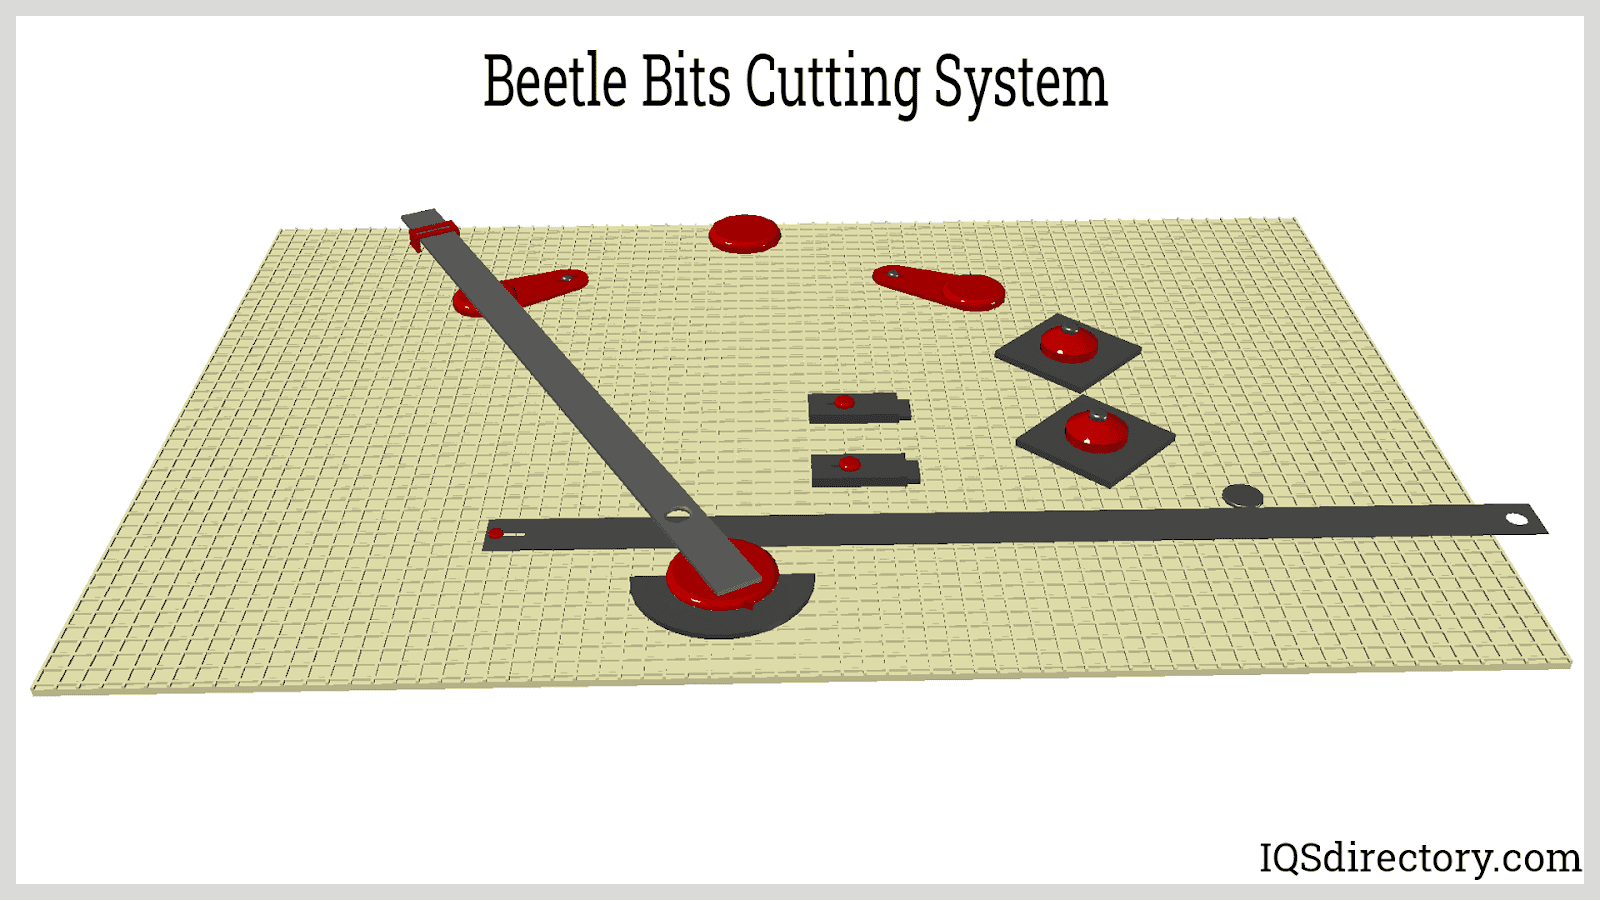 Beetle Bits Cutting System